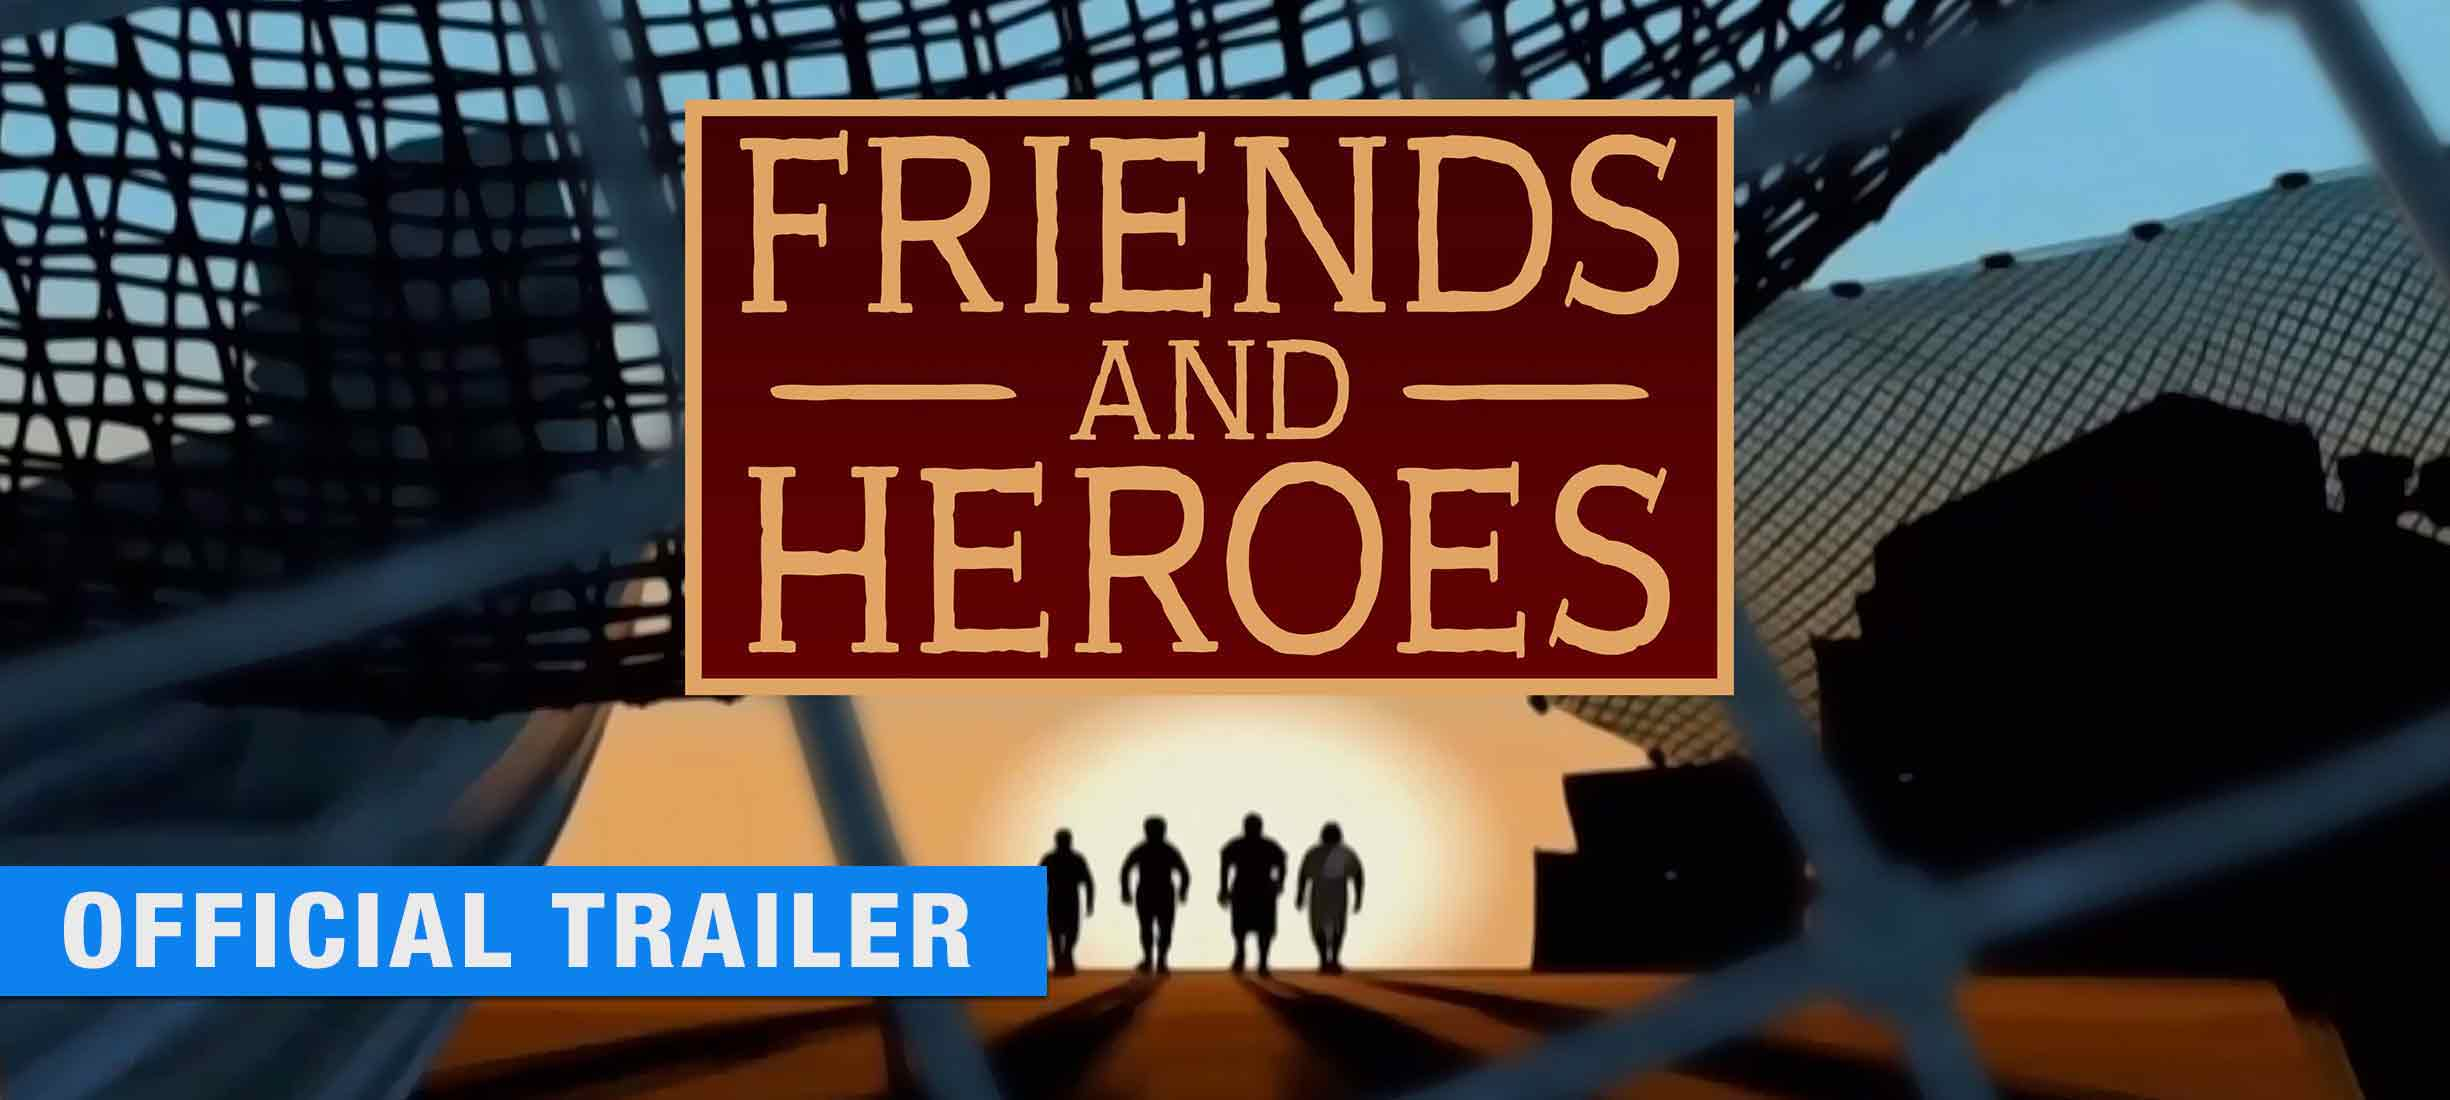 Friends and Heroes - Official Trailer